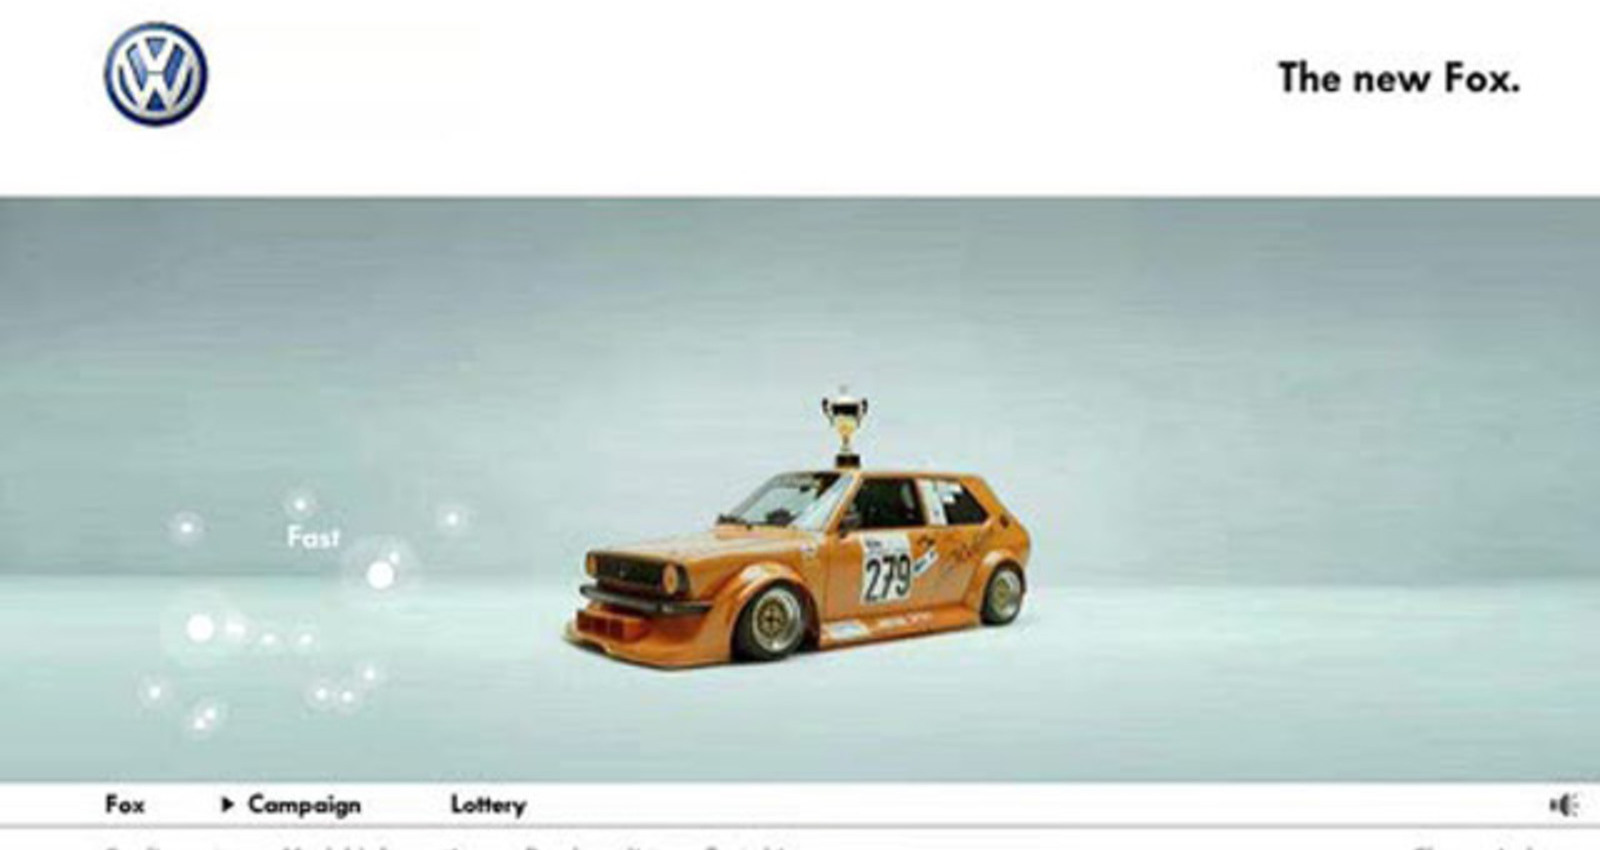 VW Fox Online Campaign Special